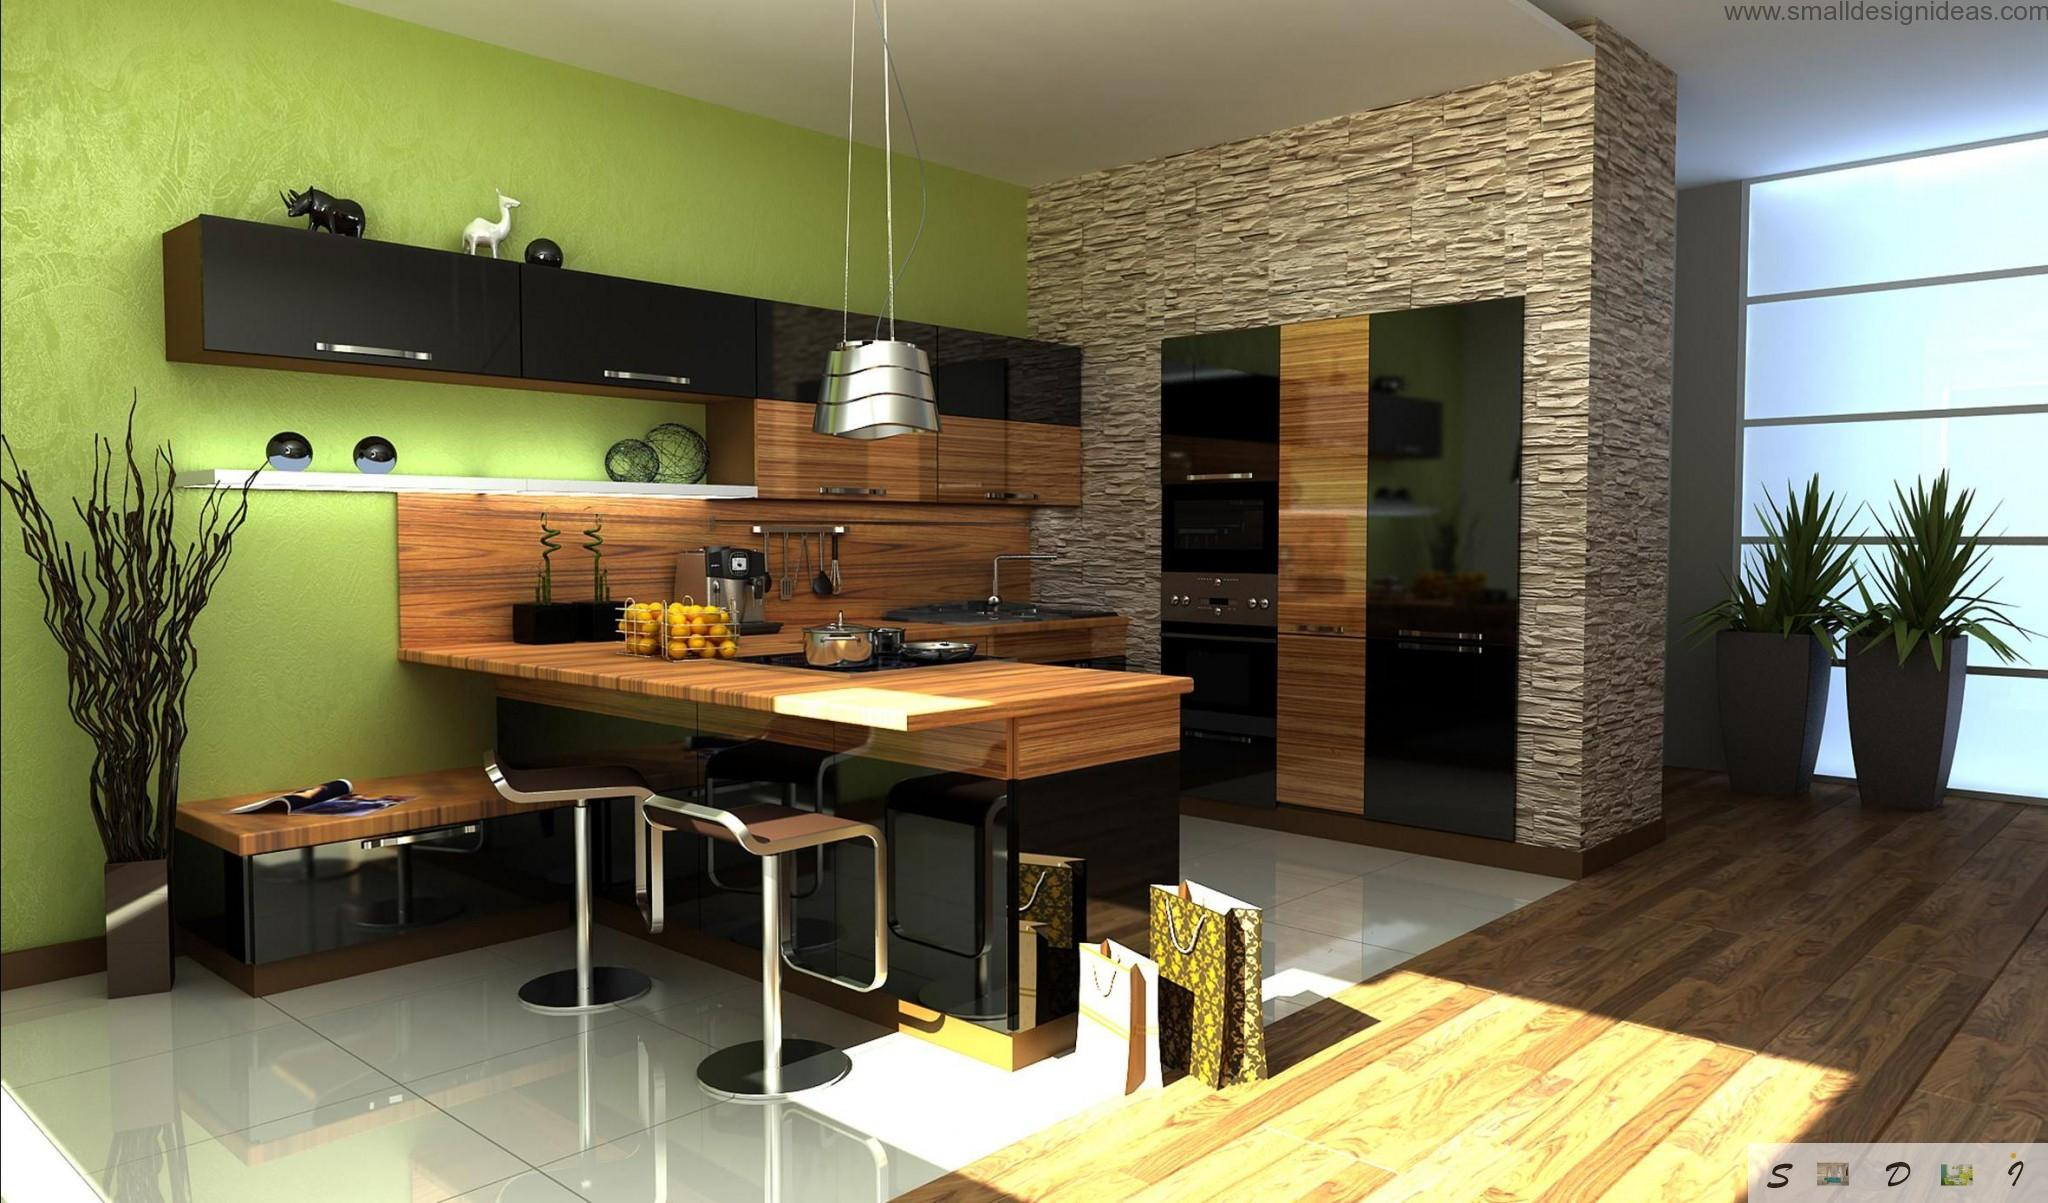 kitchen wall color ideas kitchen walls color ideas 6411